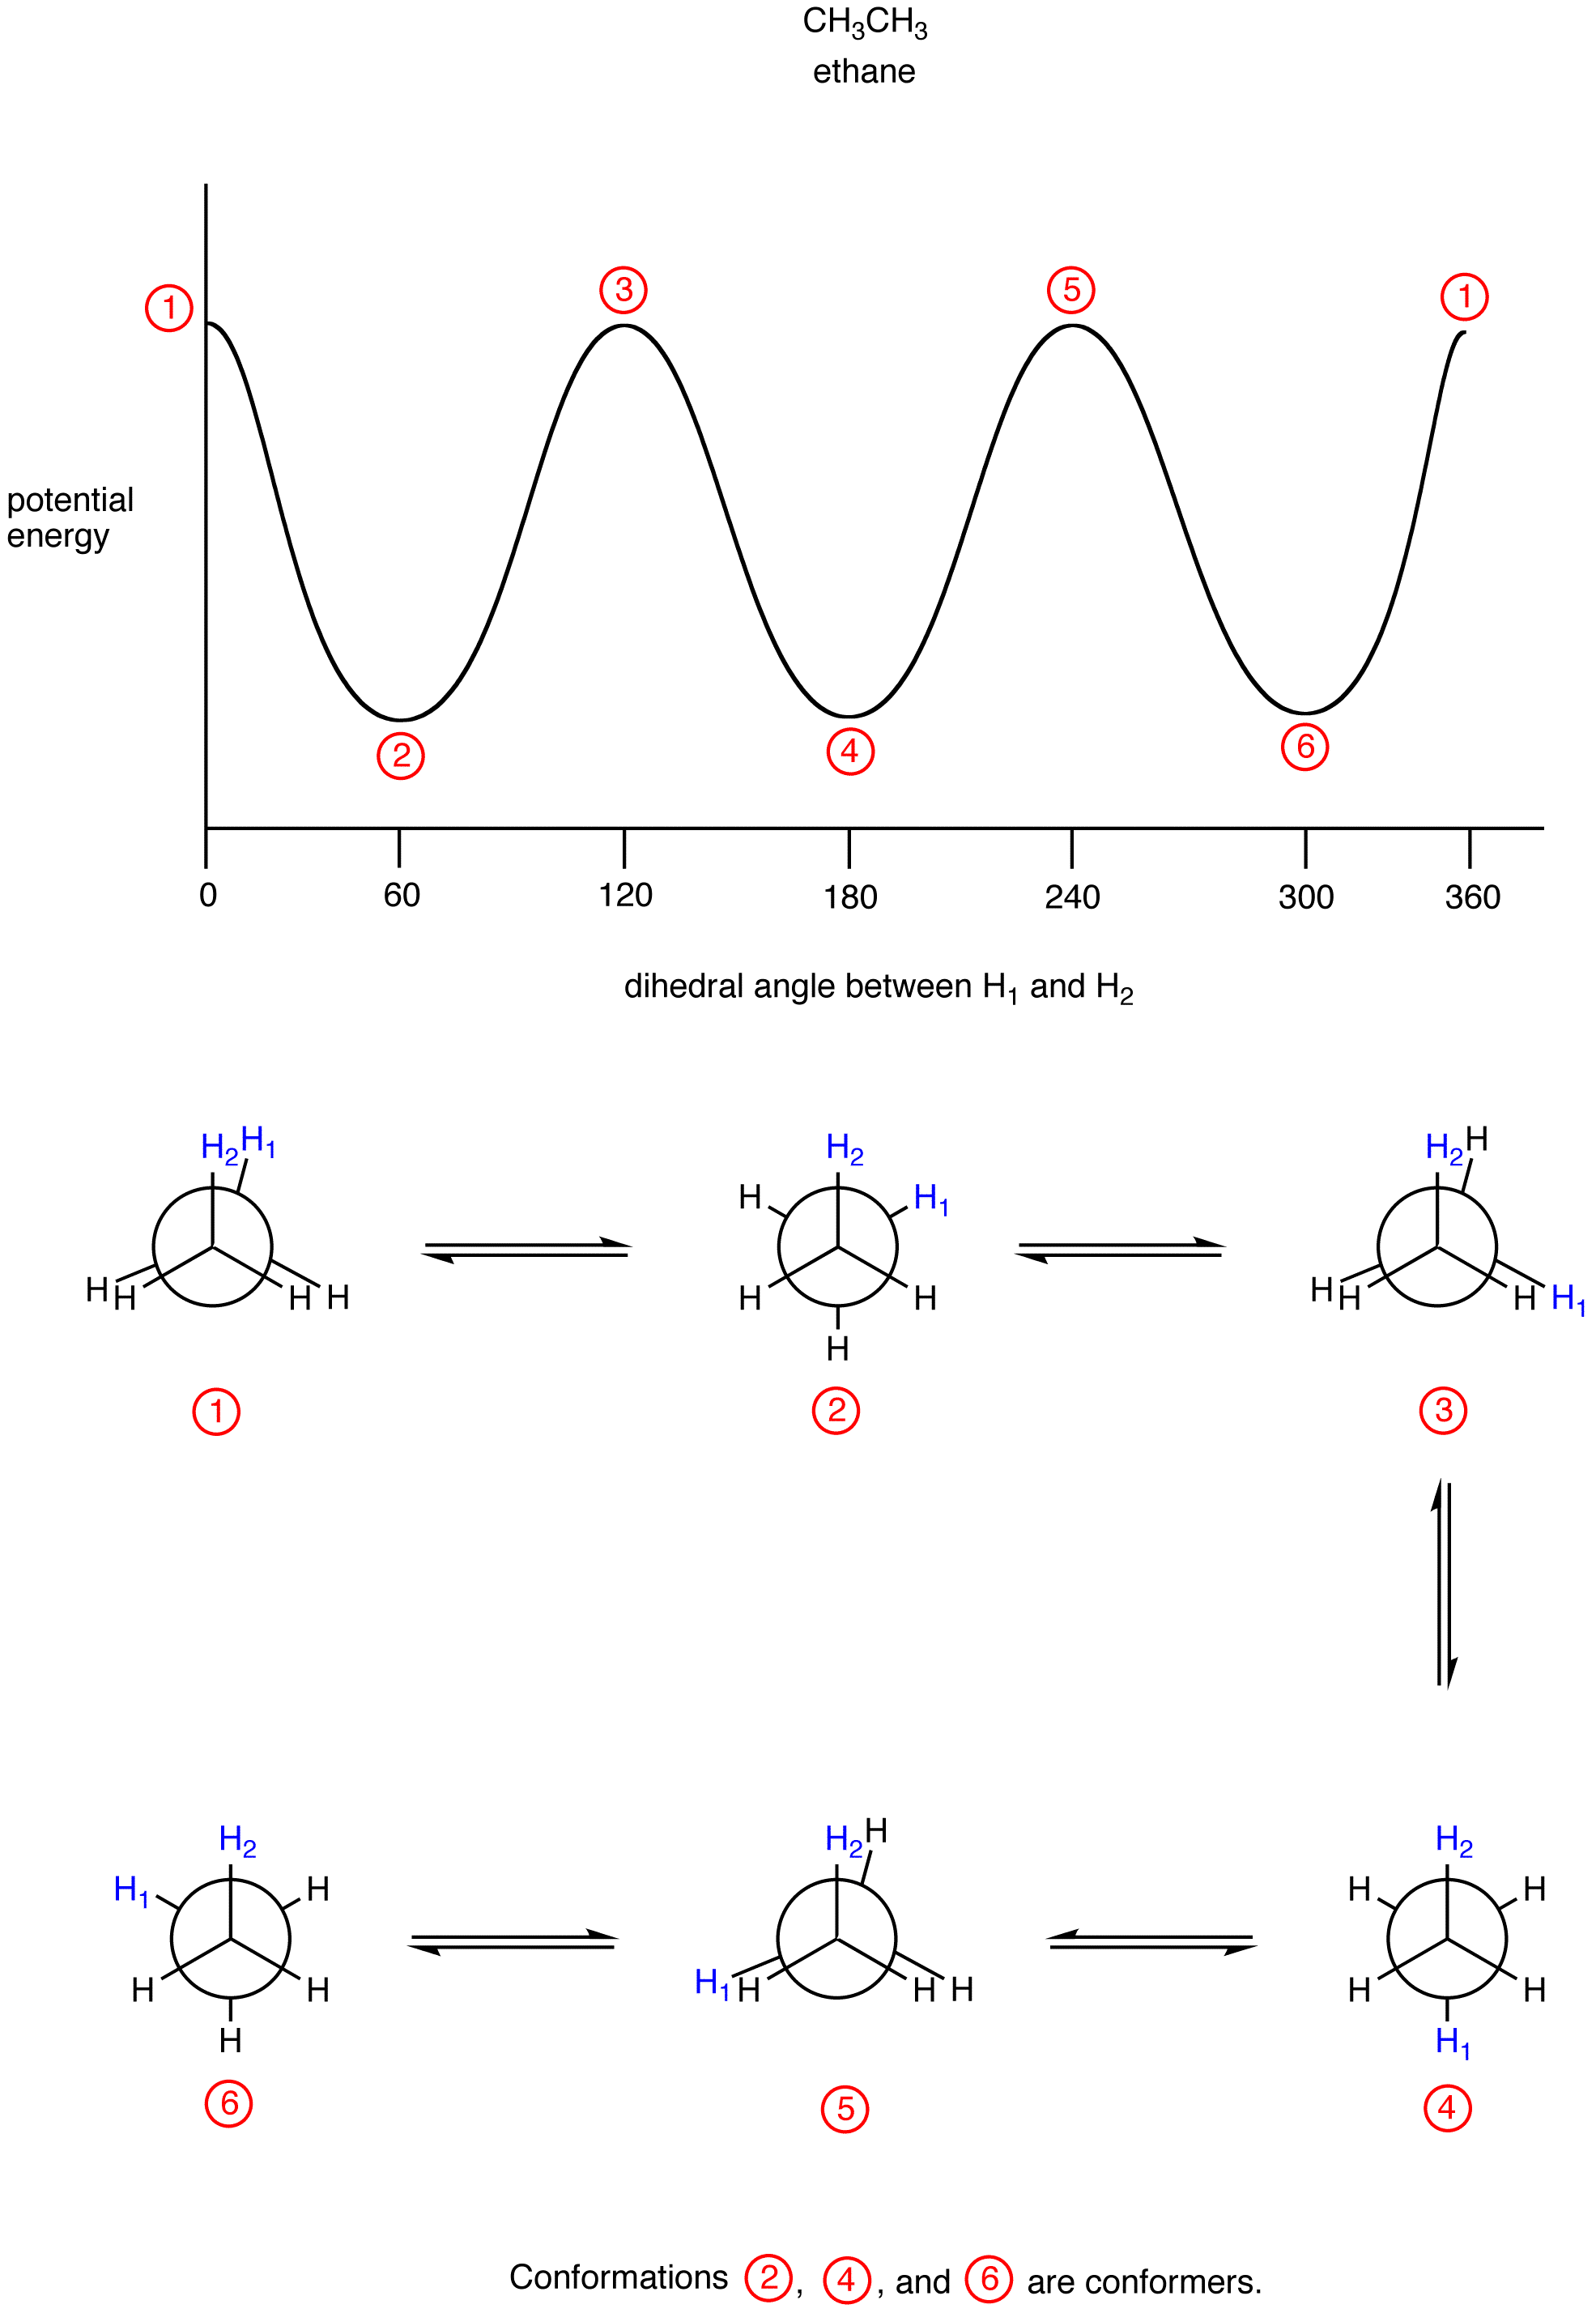 hight resolution of eg shown below is the potential energy diagram of conformations of ethane